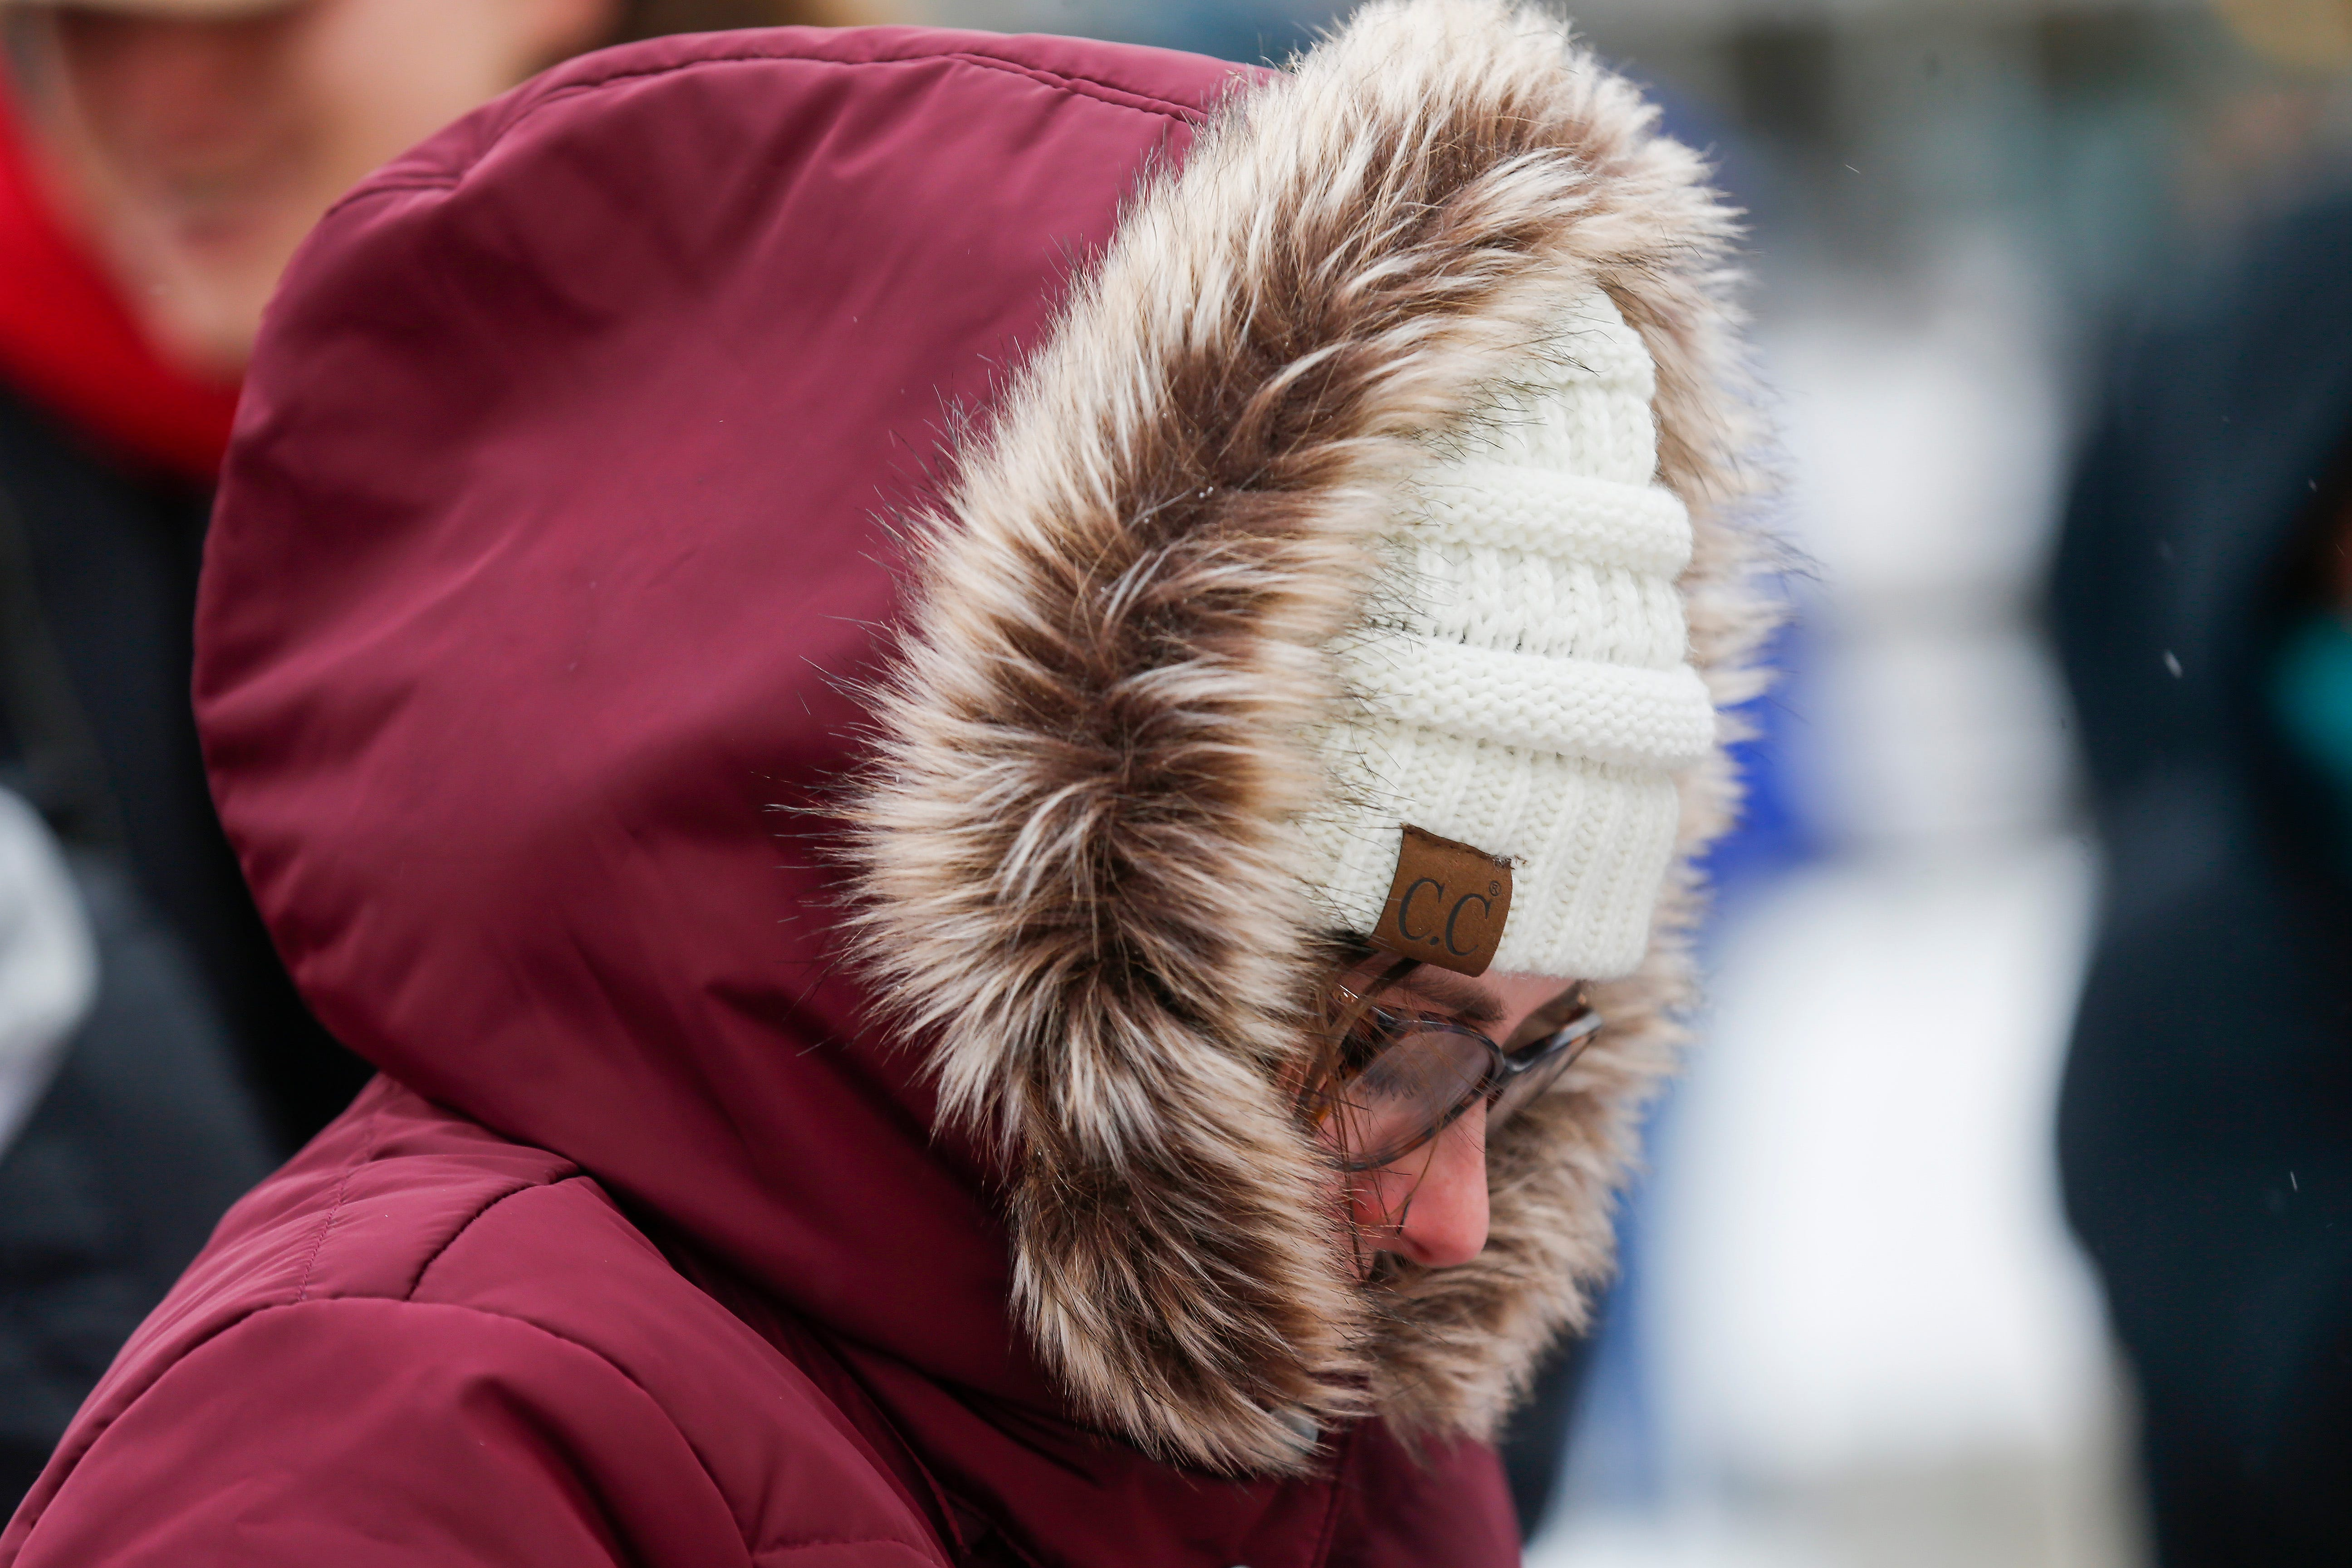 Jordan Harris, president of Me Too Springfield, bundles up for warmth  while listening to speakers during the Women's March at Park Central Square on Saturday, Jan. 19, 2019.